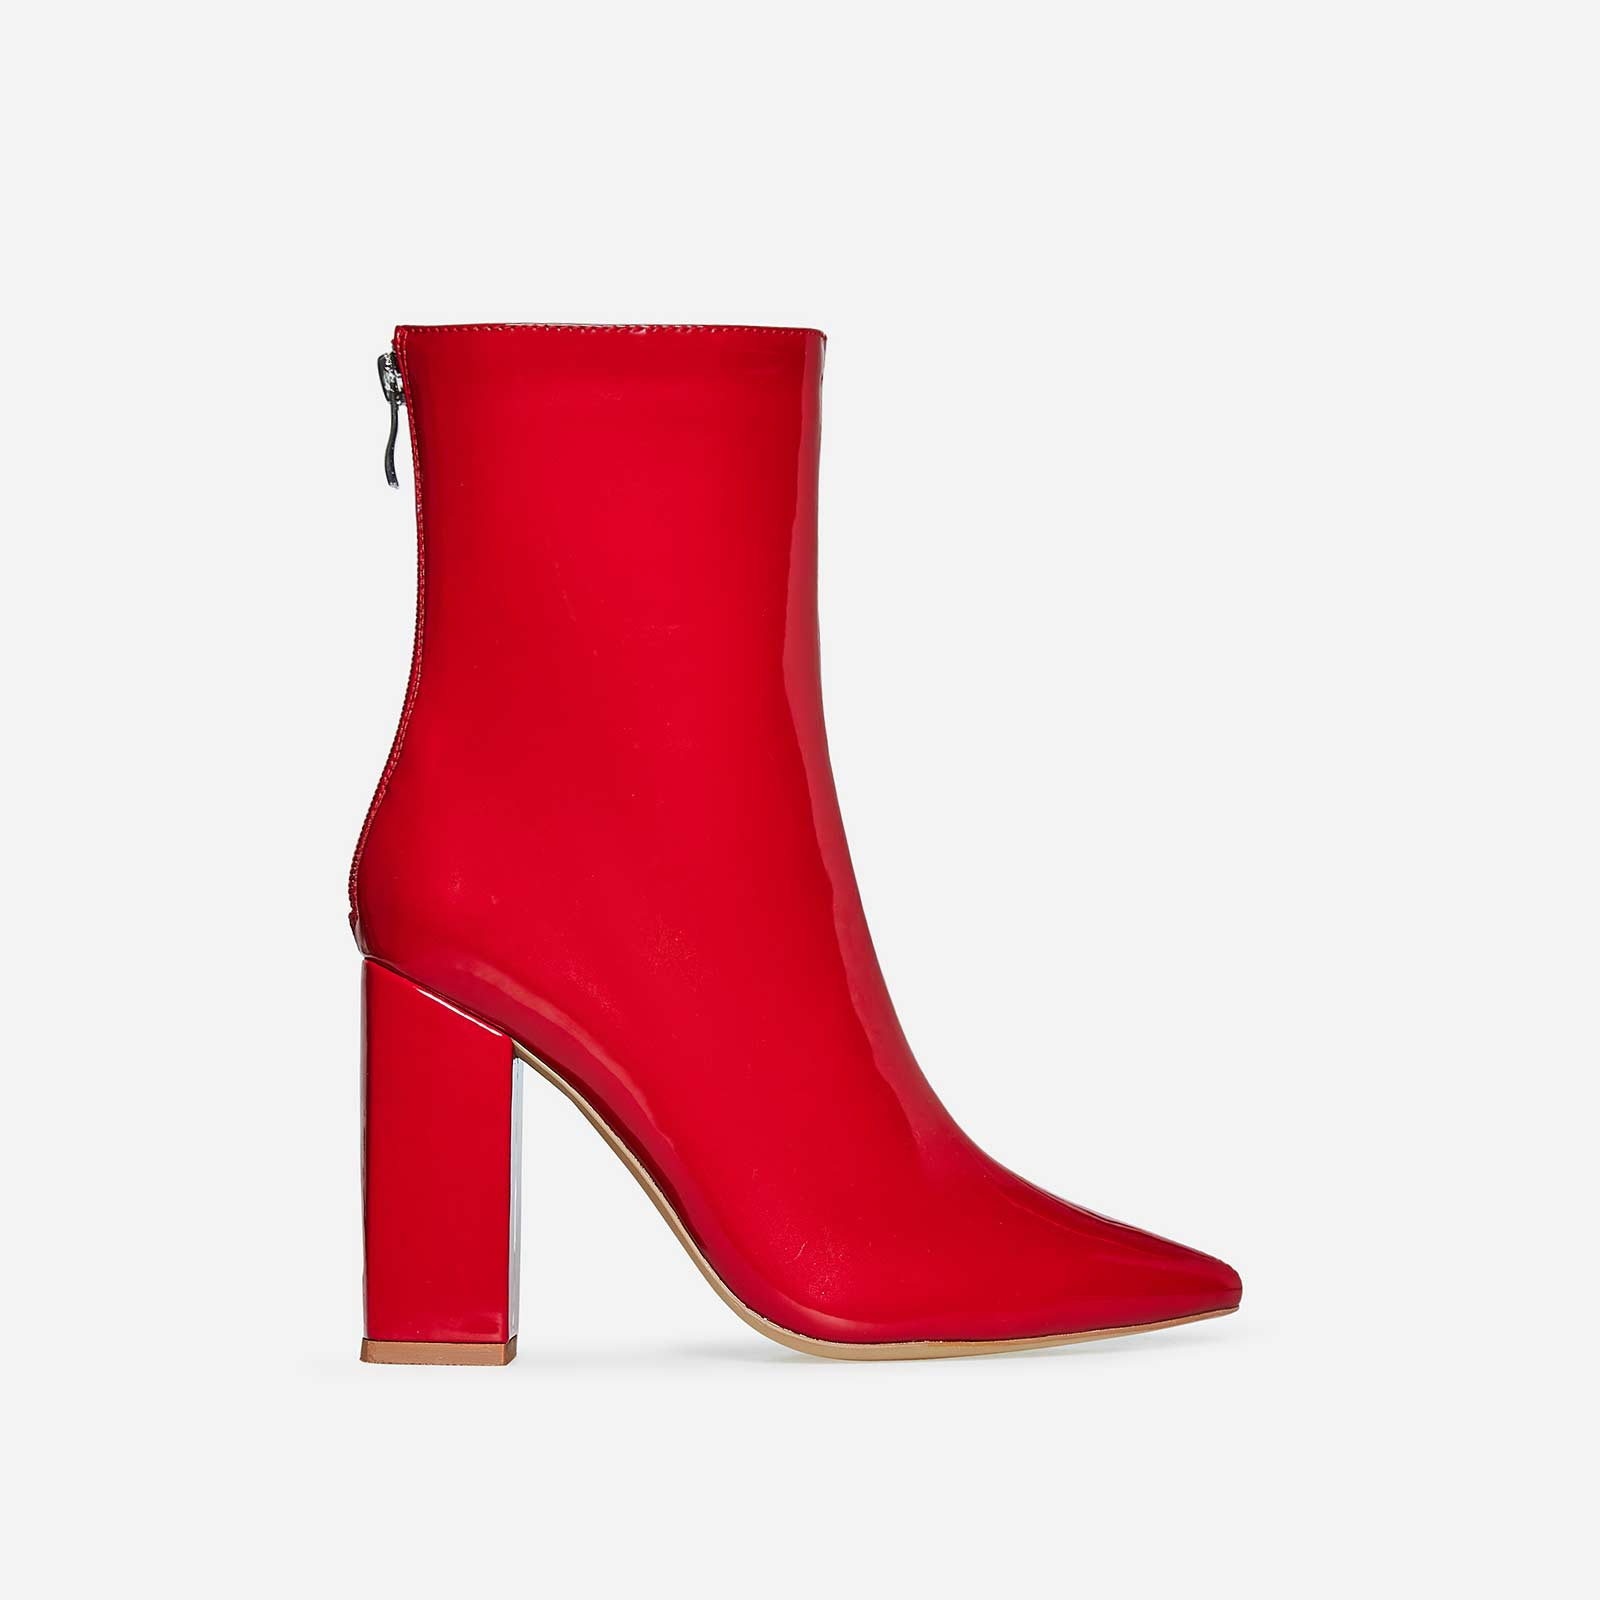 Everly Block Heel Ankle Boot In Red Patent